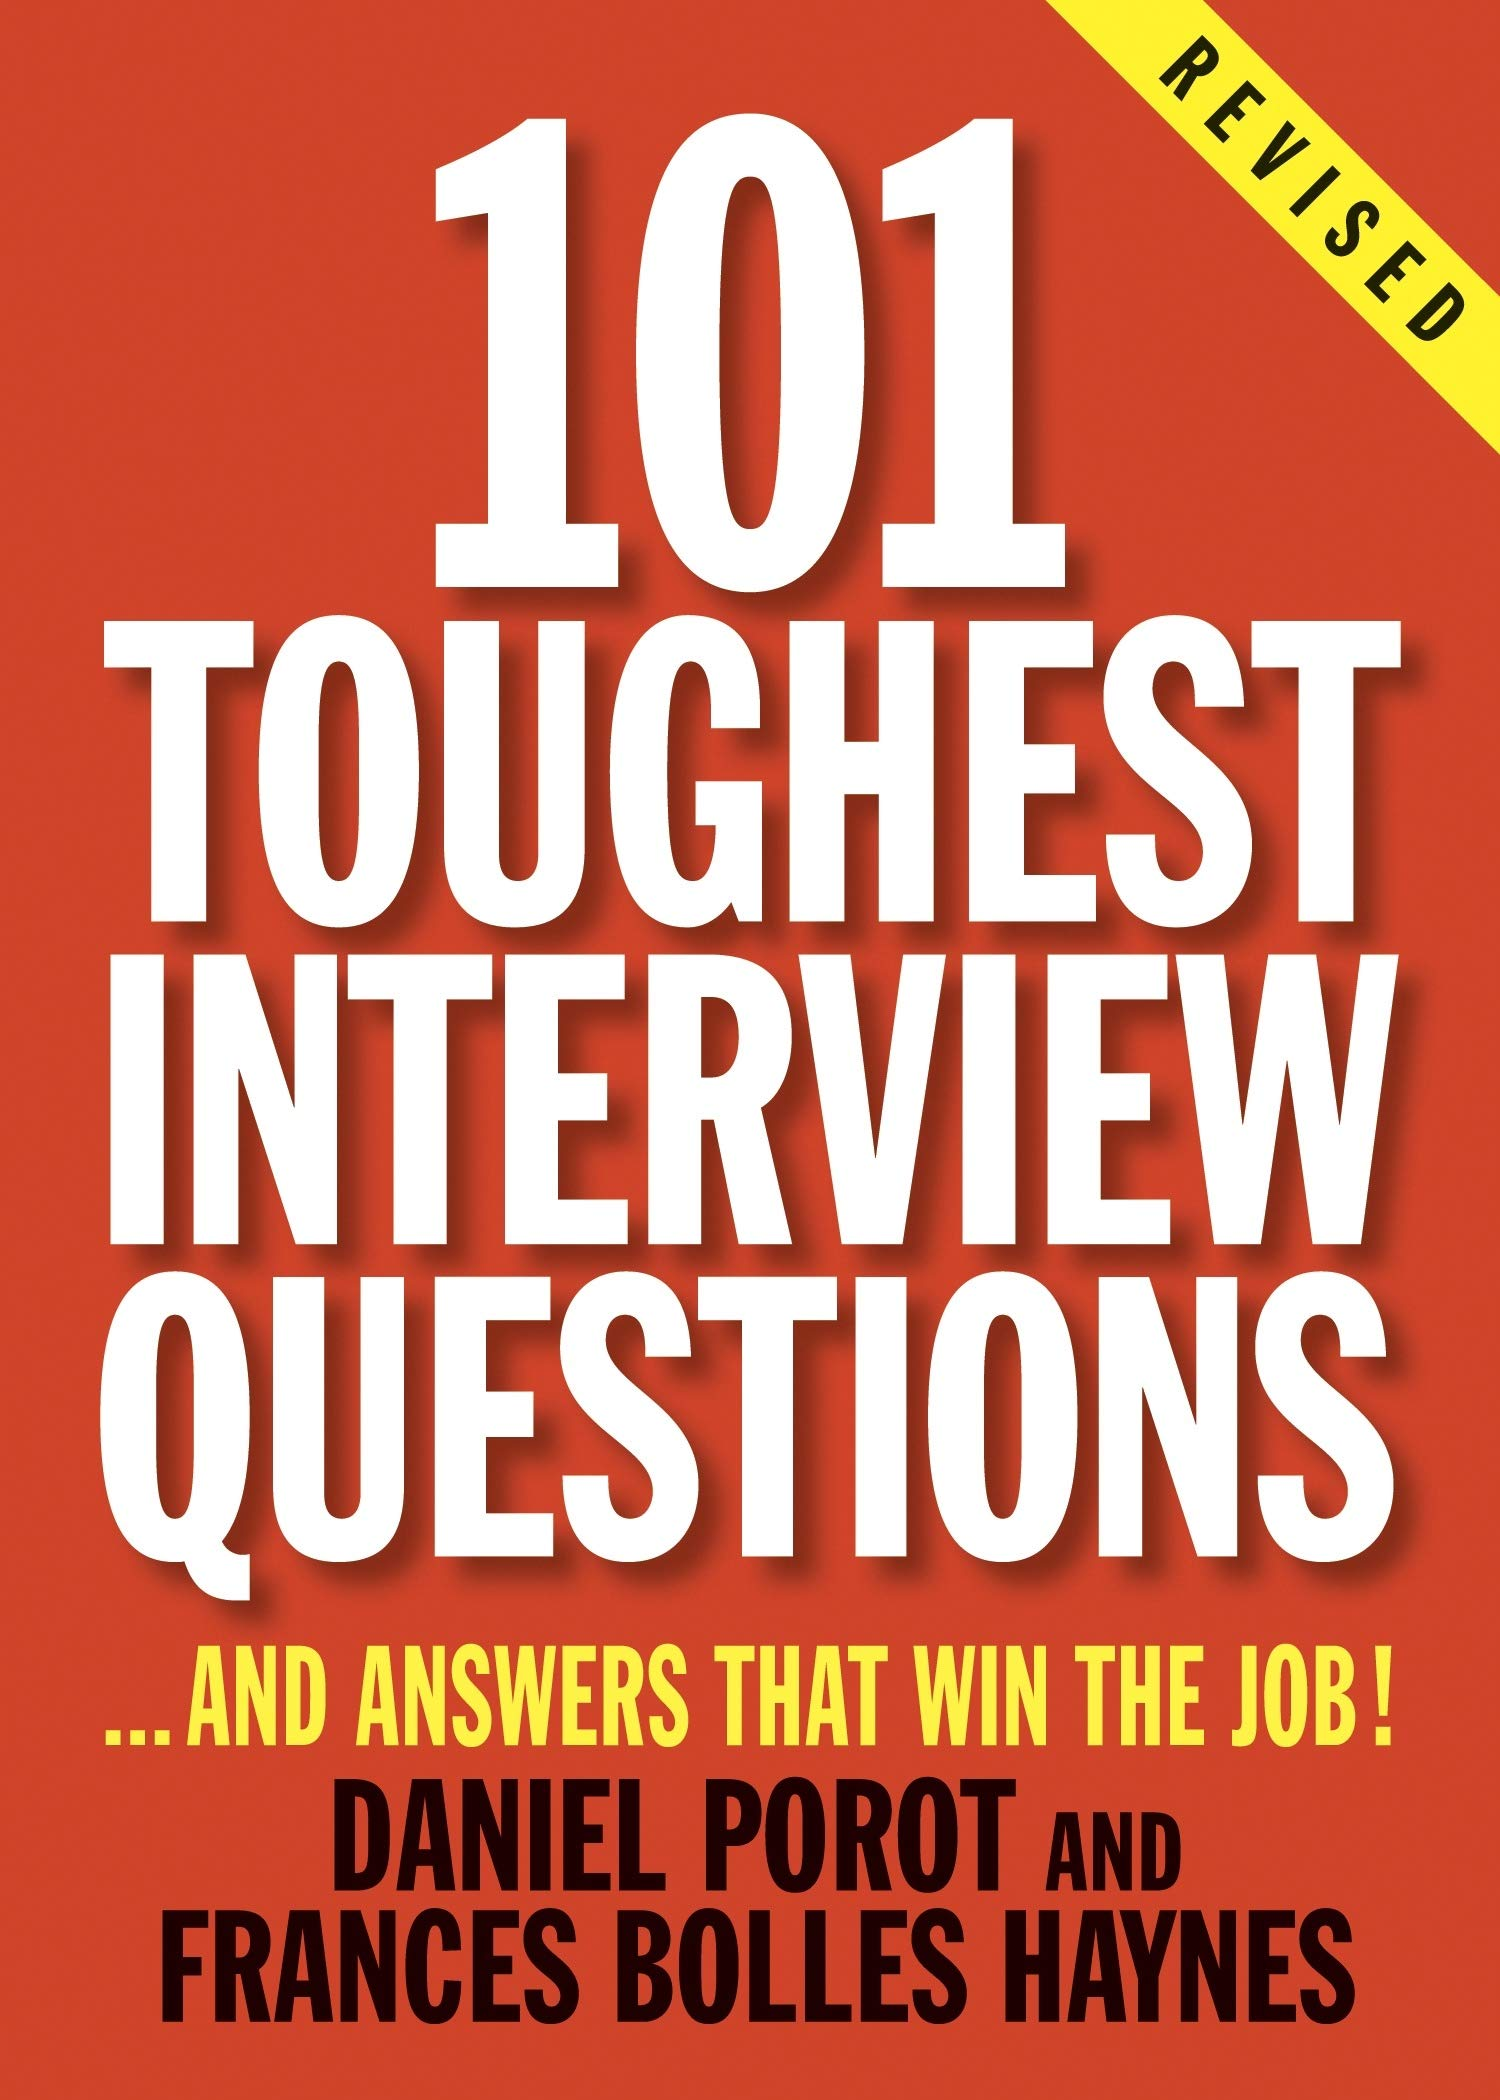 Image for 101 Toughest Interview Questions: And Answers That Win the Job! (101 Toughest Interview Questions & Answers That Win the Job)